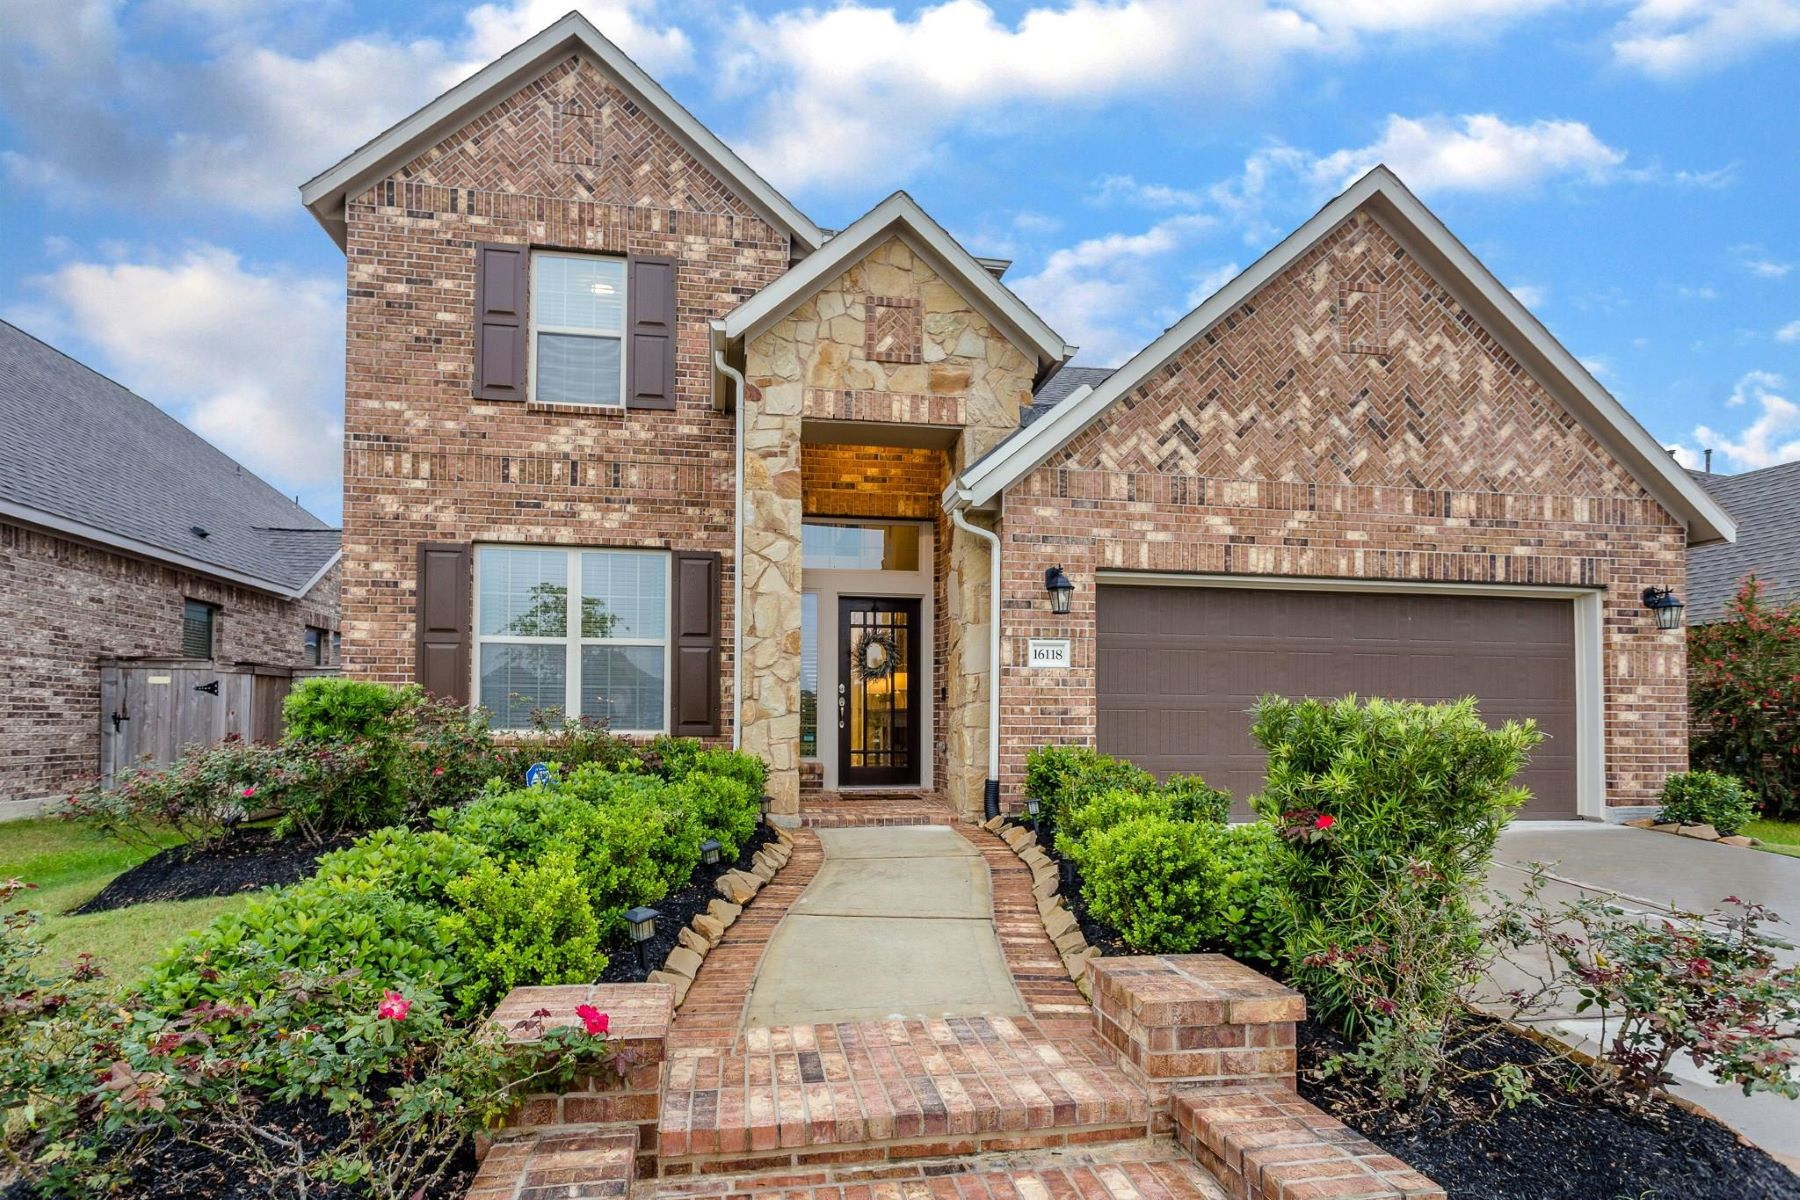 Single Family Homes for Sale at 16118 Bluegill Drive Cypress, Texas 77433 United States